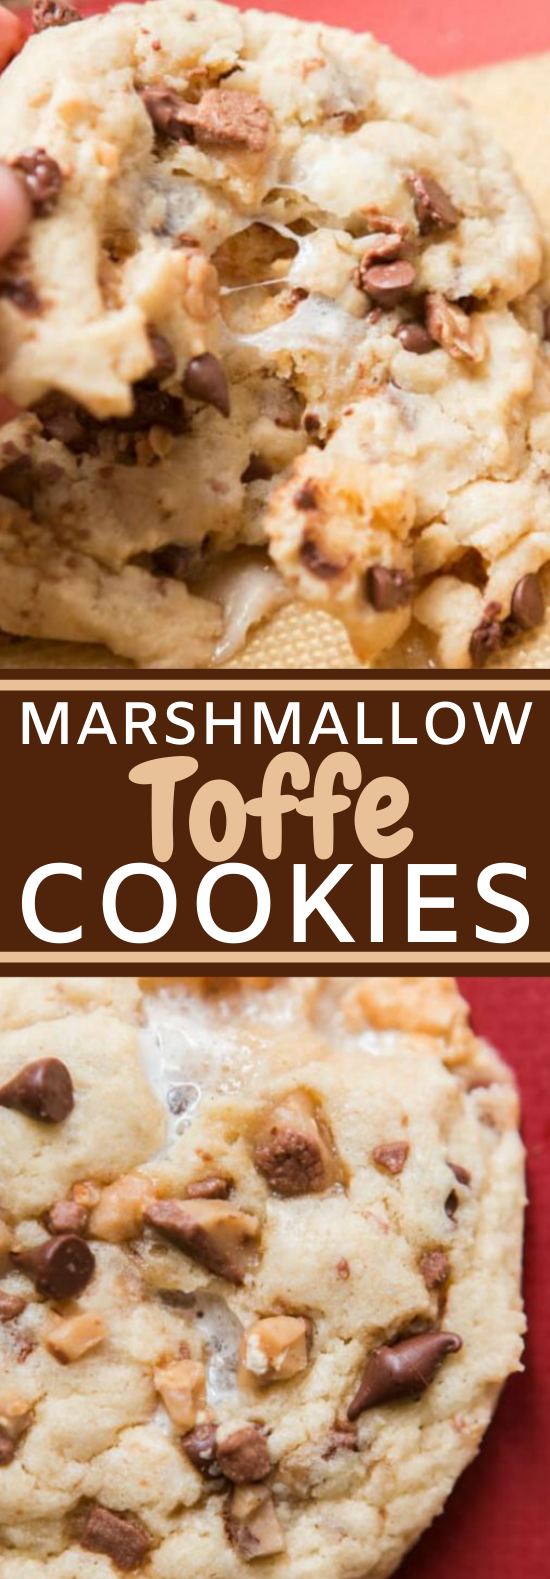 Marshmallow Toffee Cookies #cookies #desserts #baking #recipes #chocolatechips